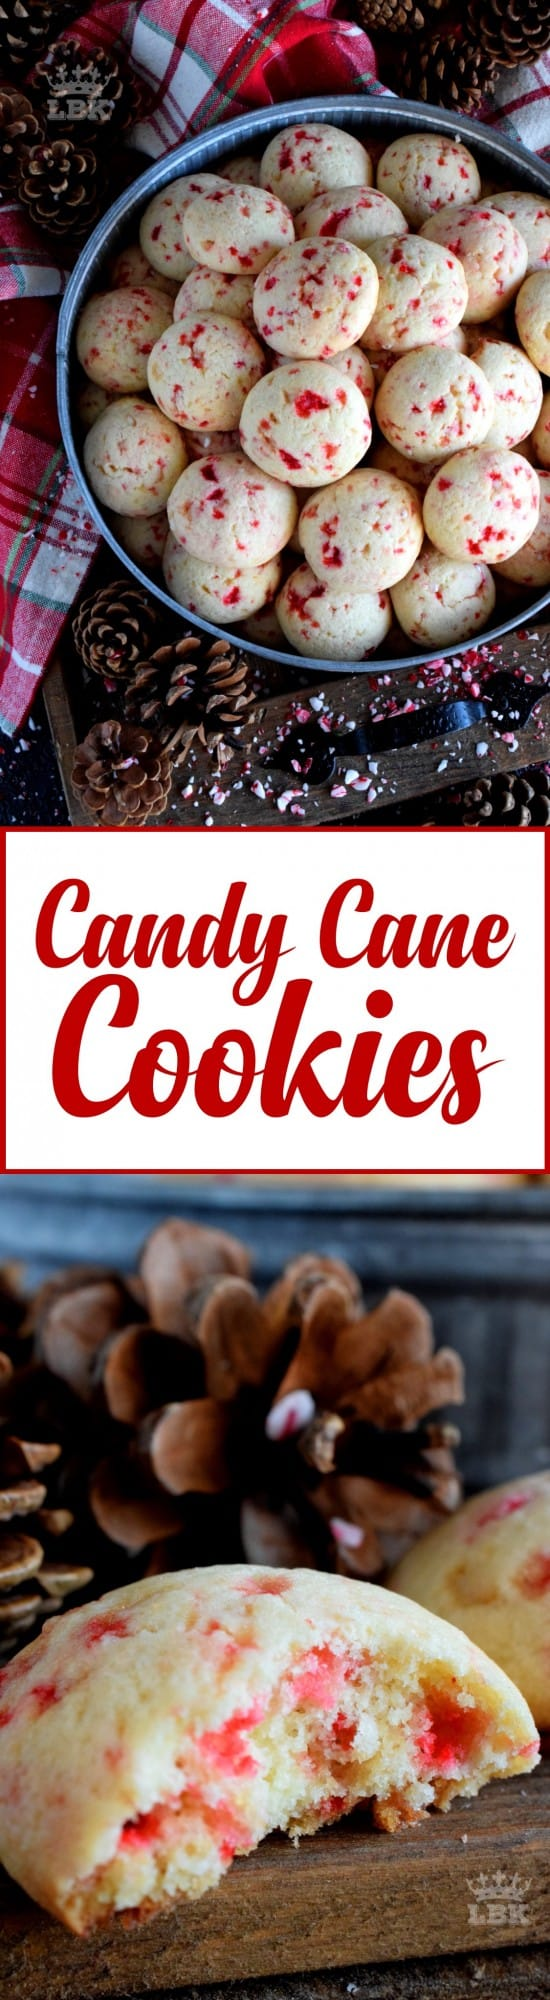 Candy Cane Cookies - Soft and fluffy, light and moist, Candy Cane Cookies are for the serious candy cane lover, complete with real crushed candy canes!#cookies #candycanes #candy #canes #holiday #christmas #baking